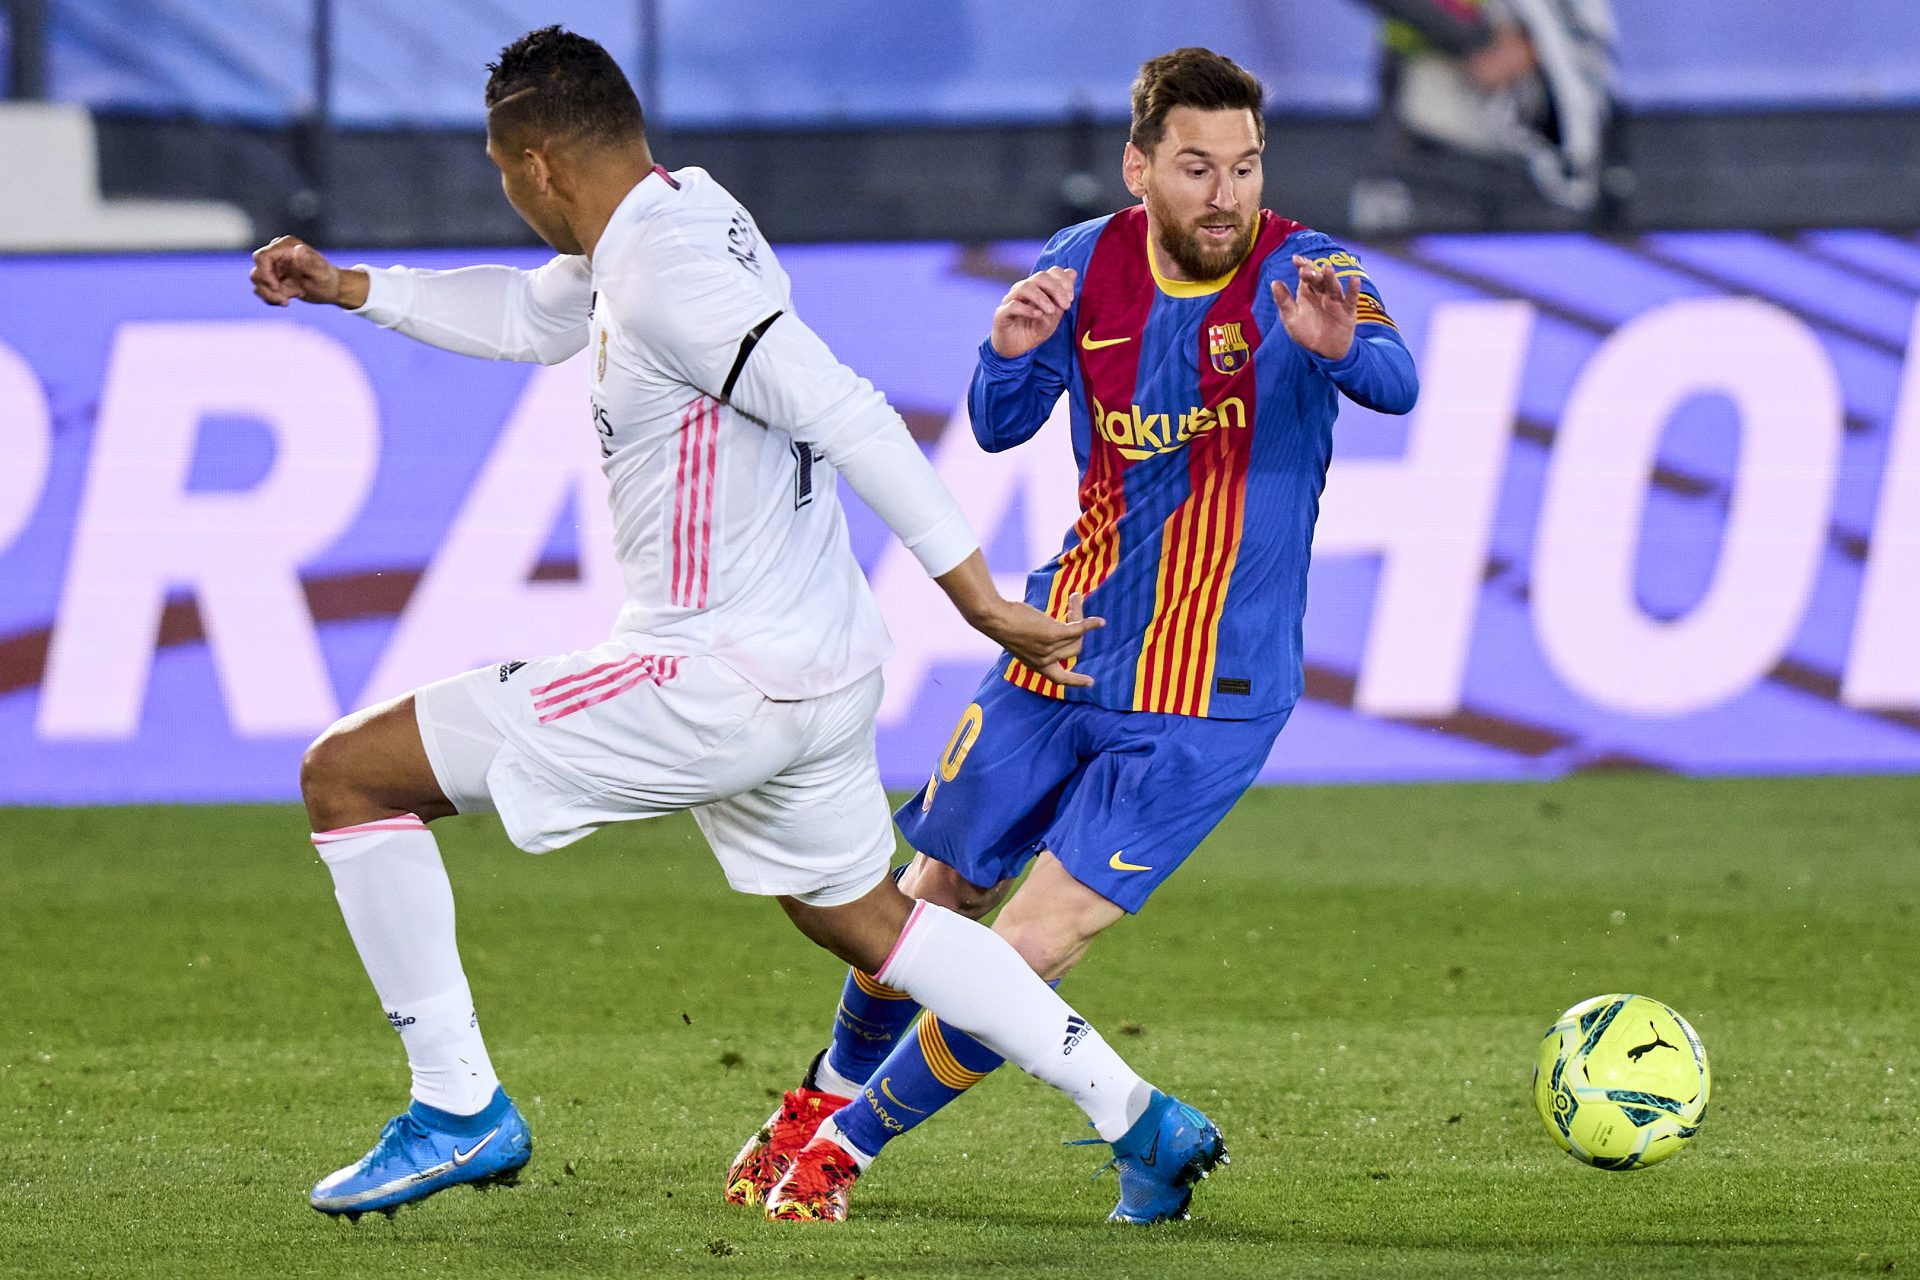 The Super League of European soccer: keys to the controversy